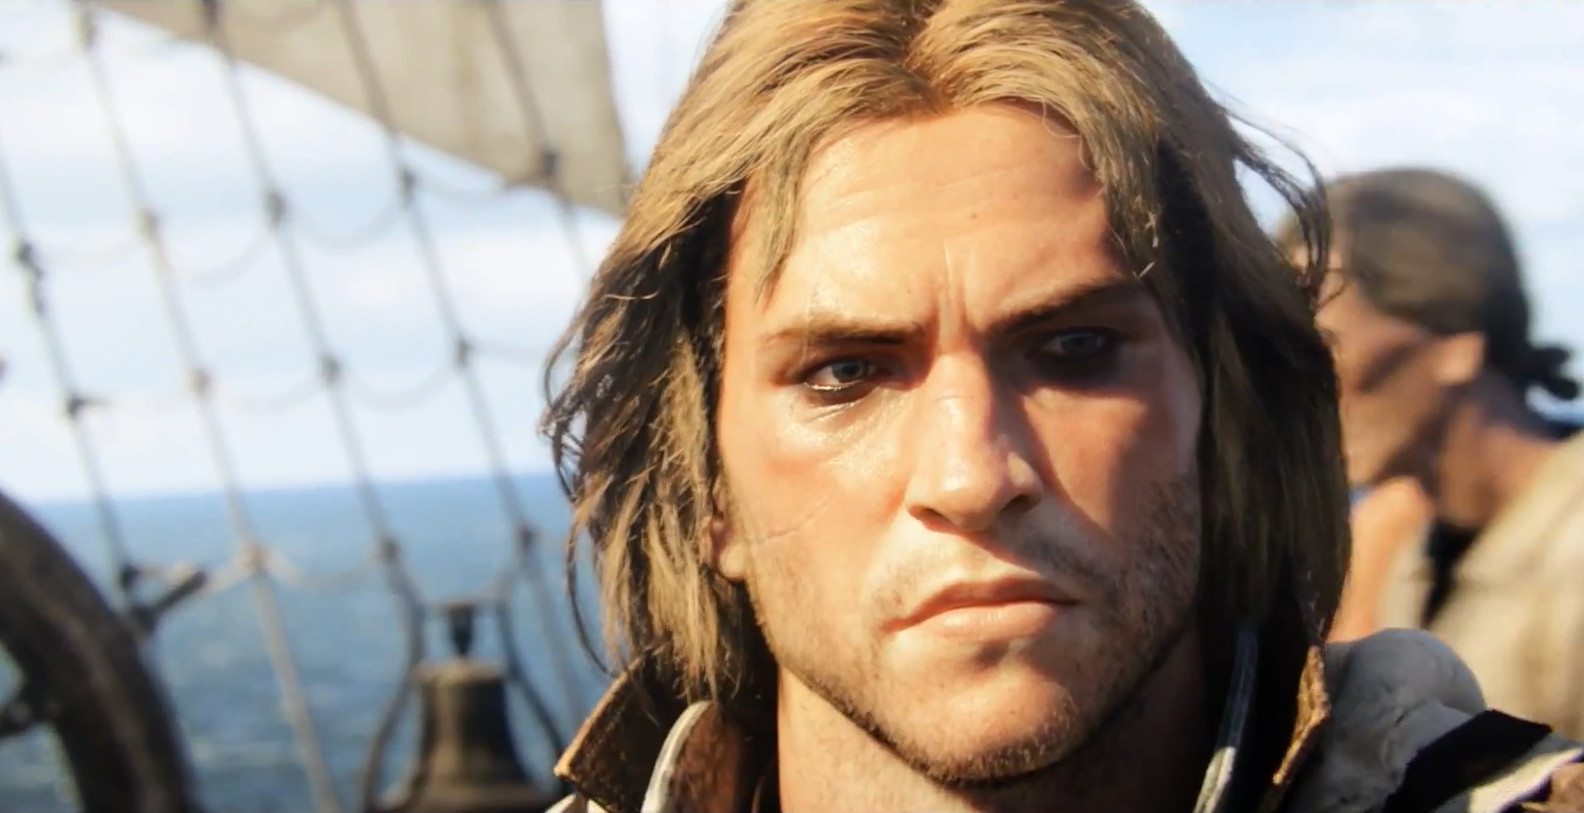 Assassins Creed IV - Edward Kenway's Face